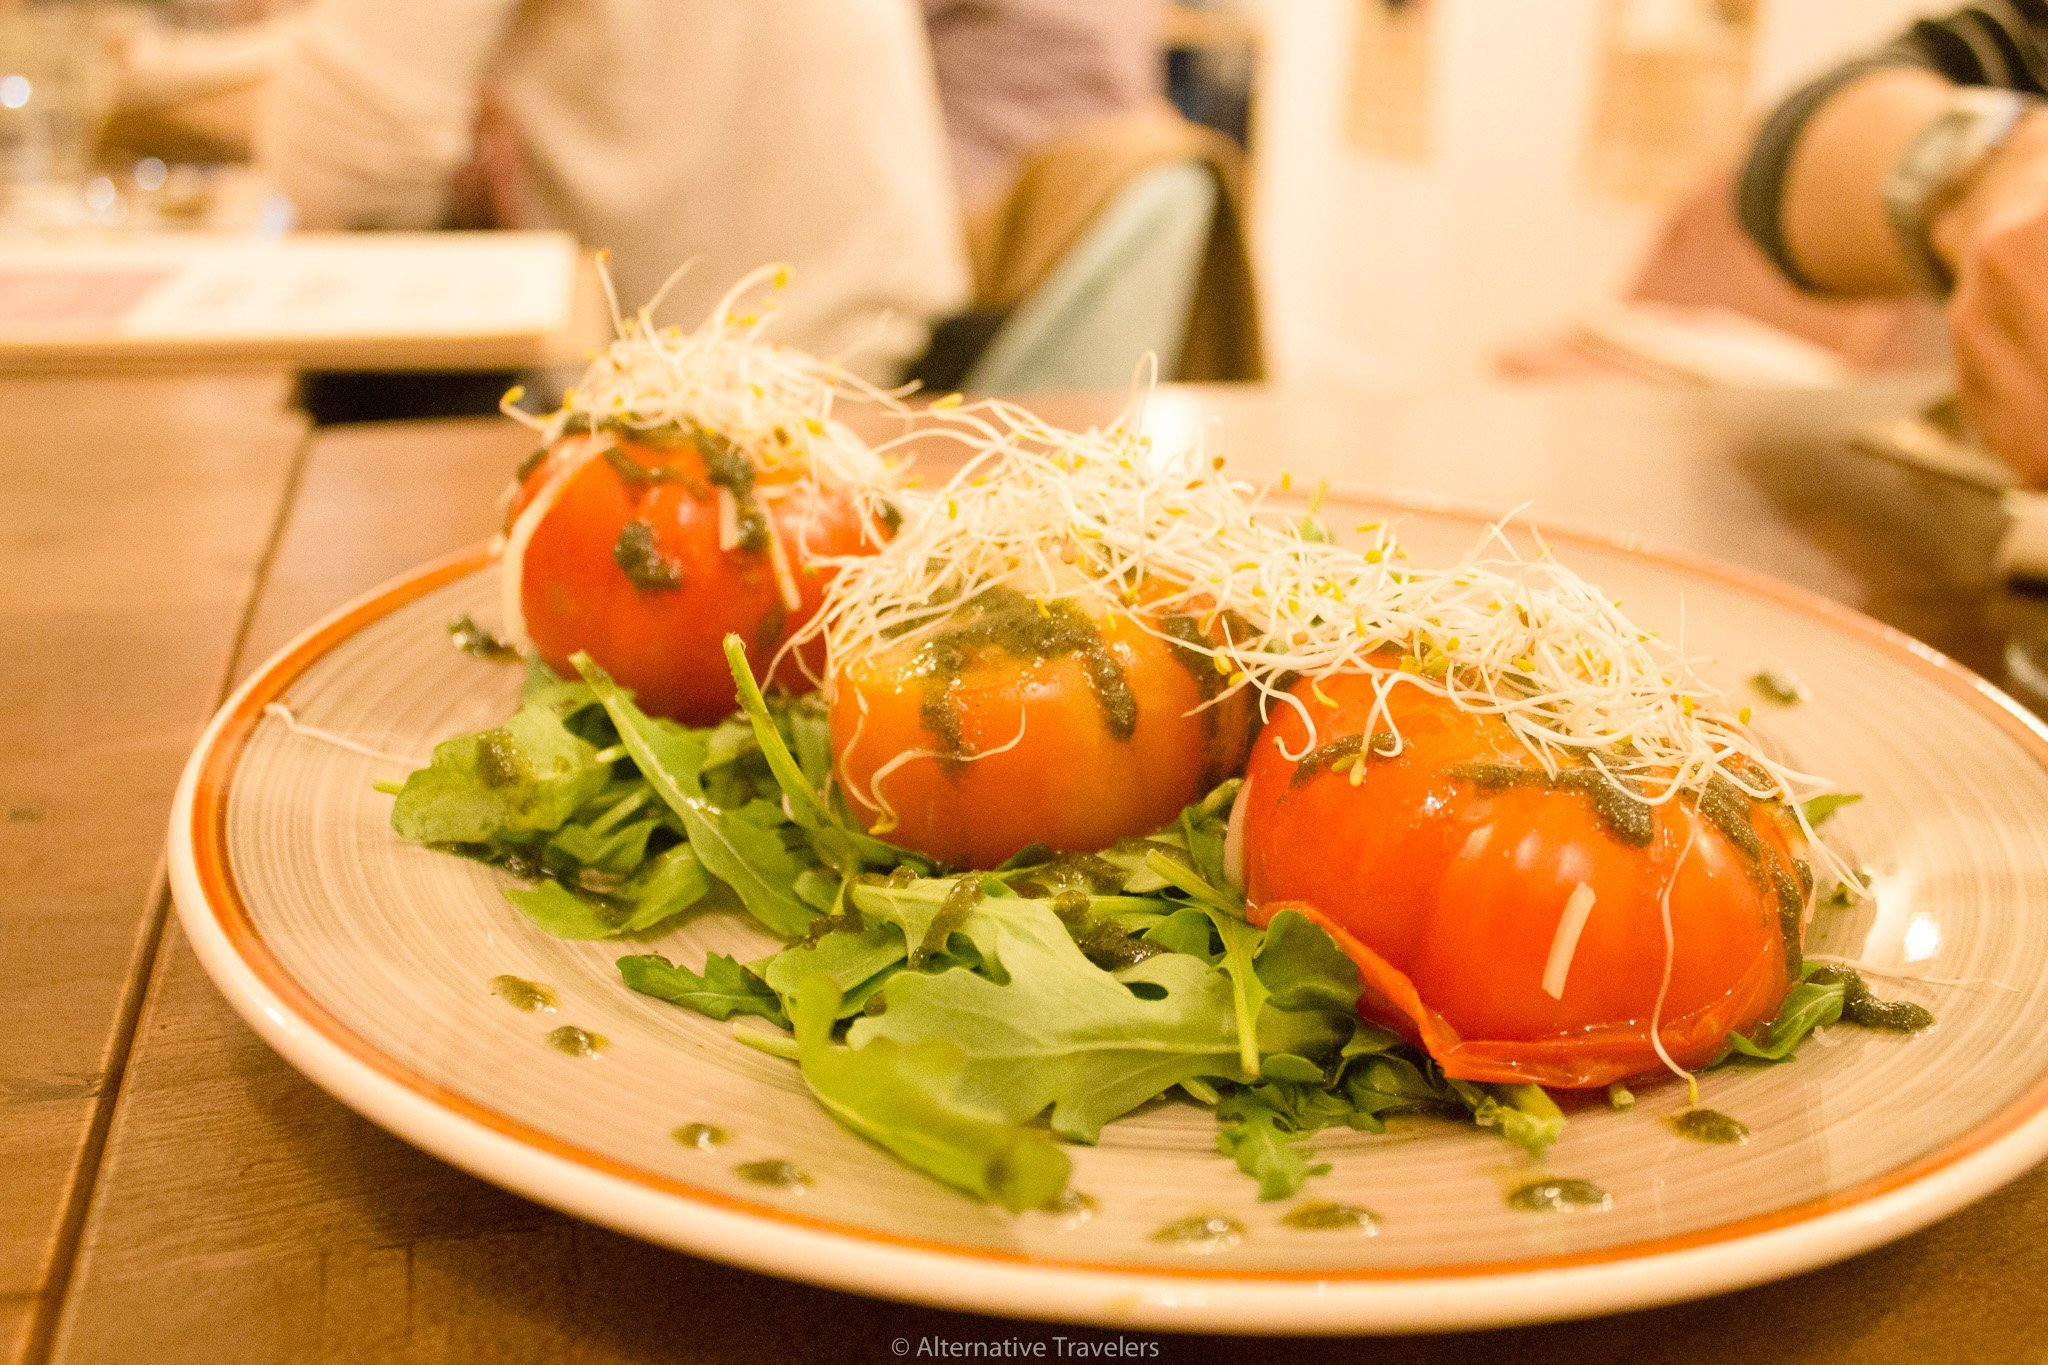 Caprese style salad at La Tia Carlota | AlternativeTravelers.com